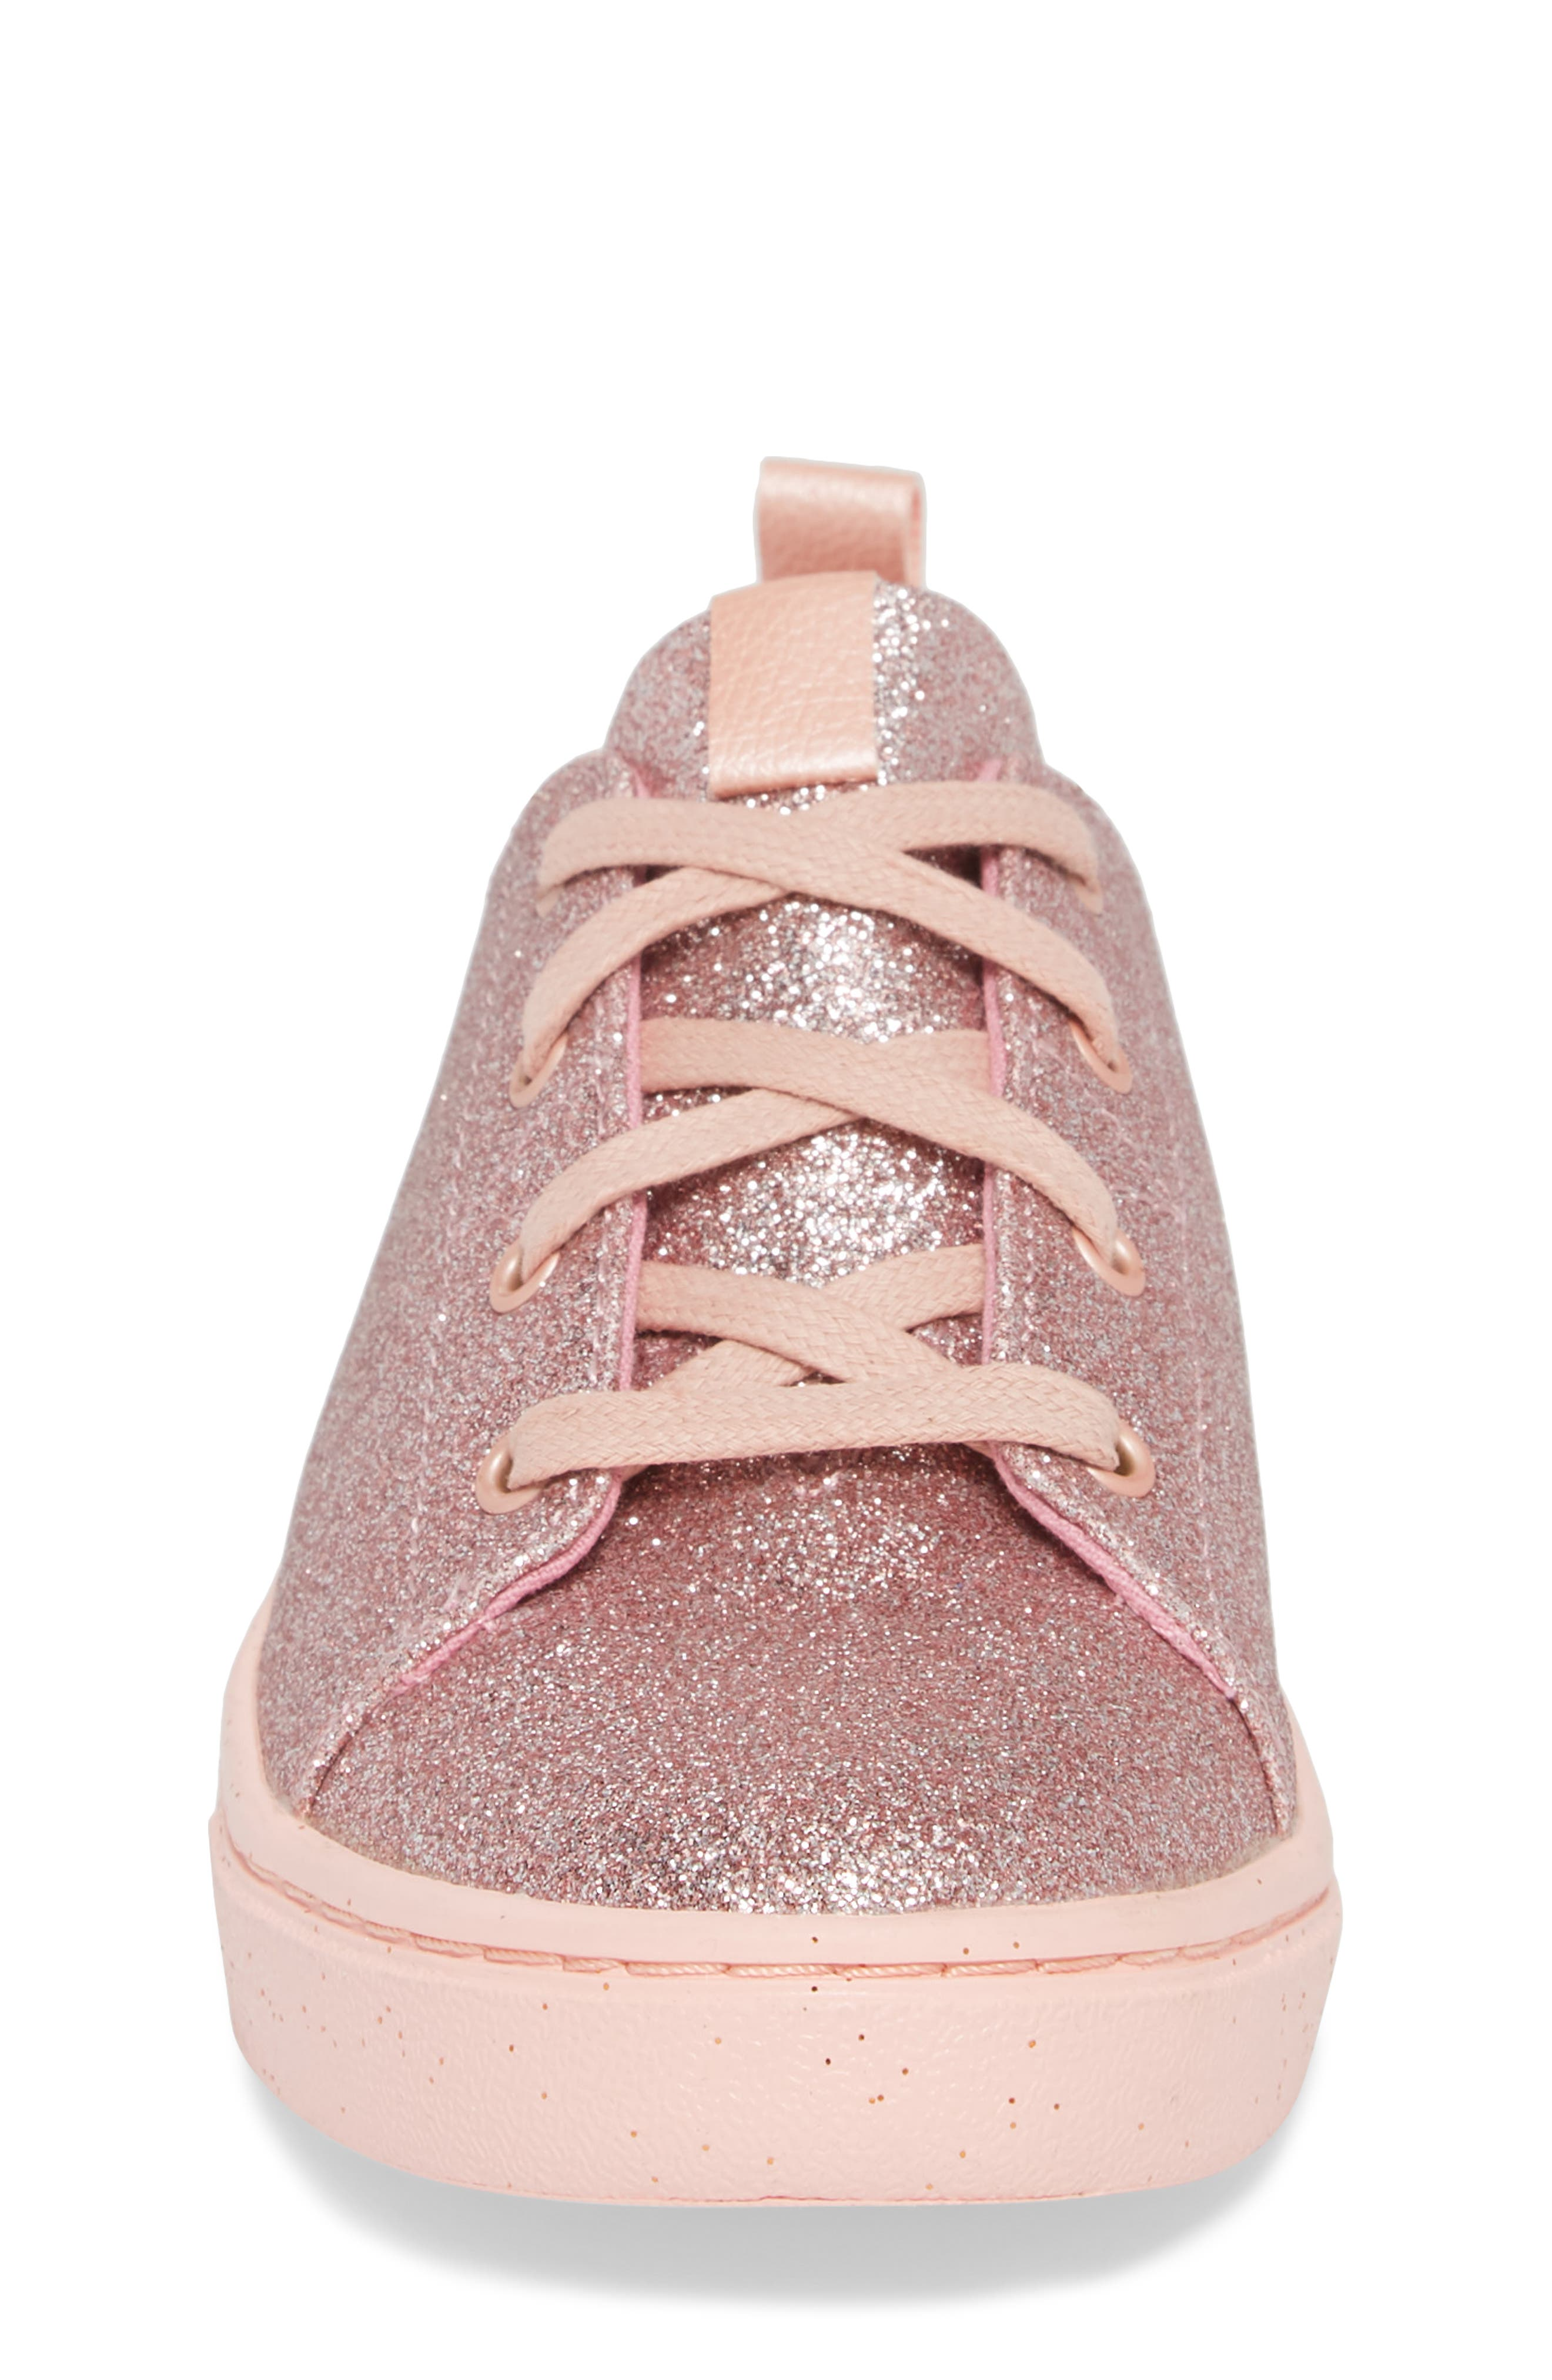 TOMS,                             Lenny Metallic Glitter Sneaker,                             Alternate thumbnail 4, color,                             650